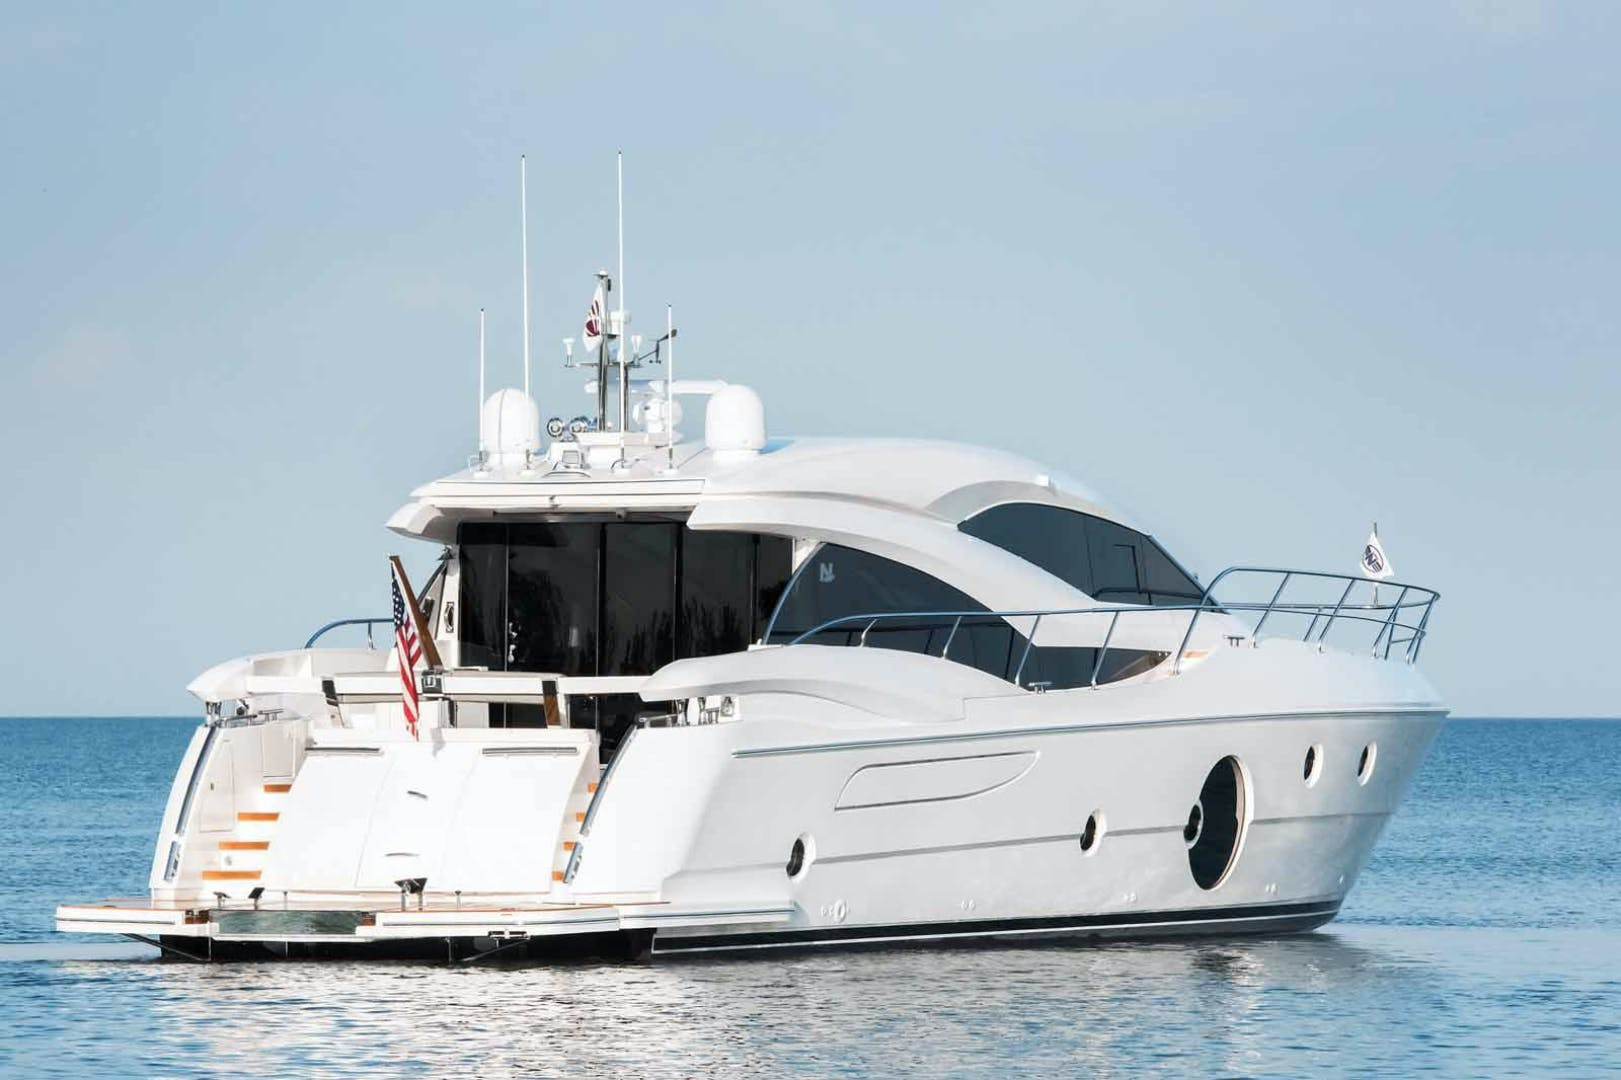 2018 Neptunus 65' Motor Yacht Express LIQUID WISDOM | Picture 1 of 90